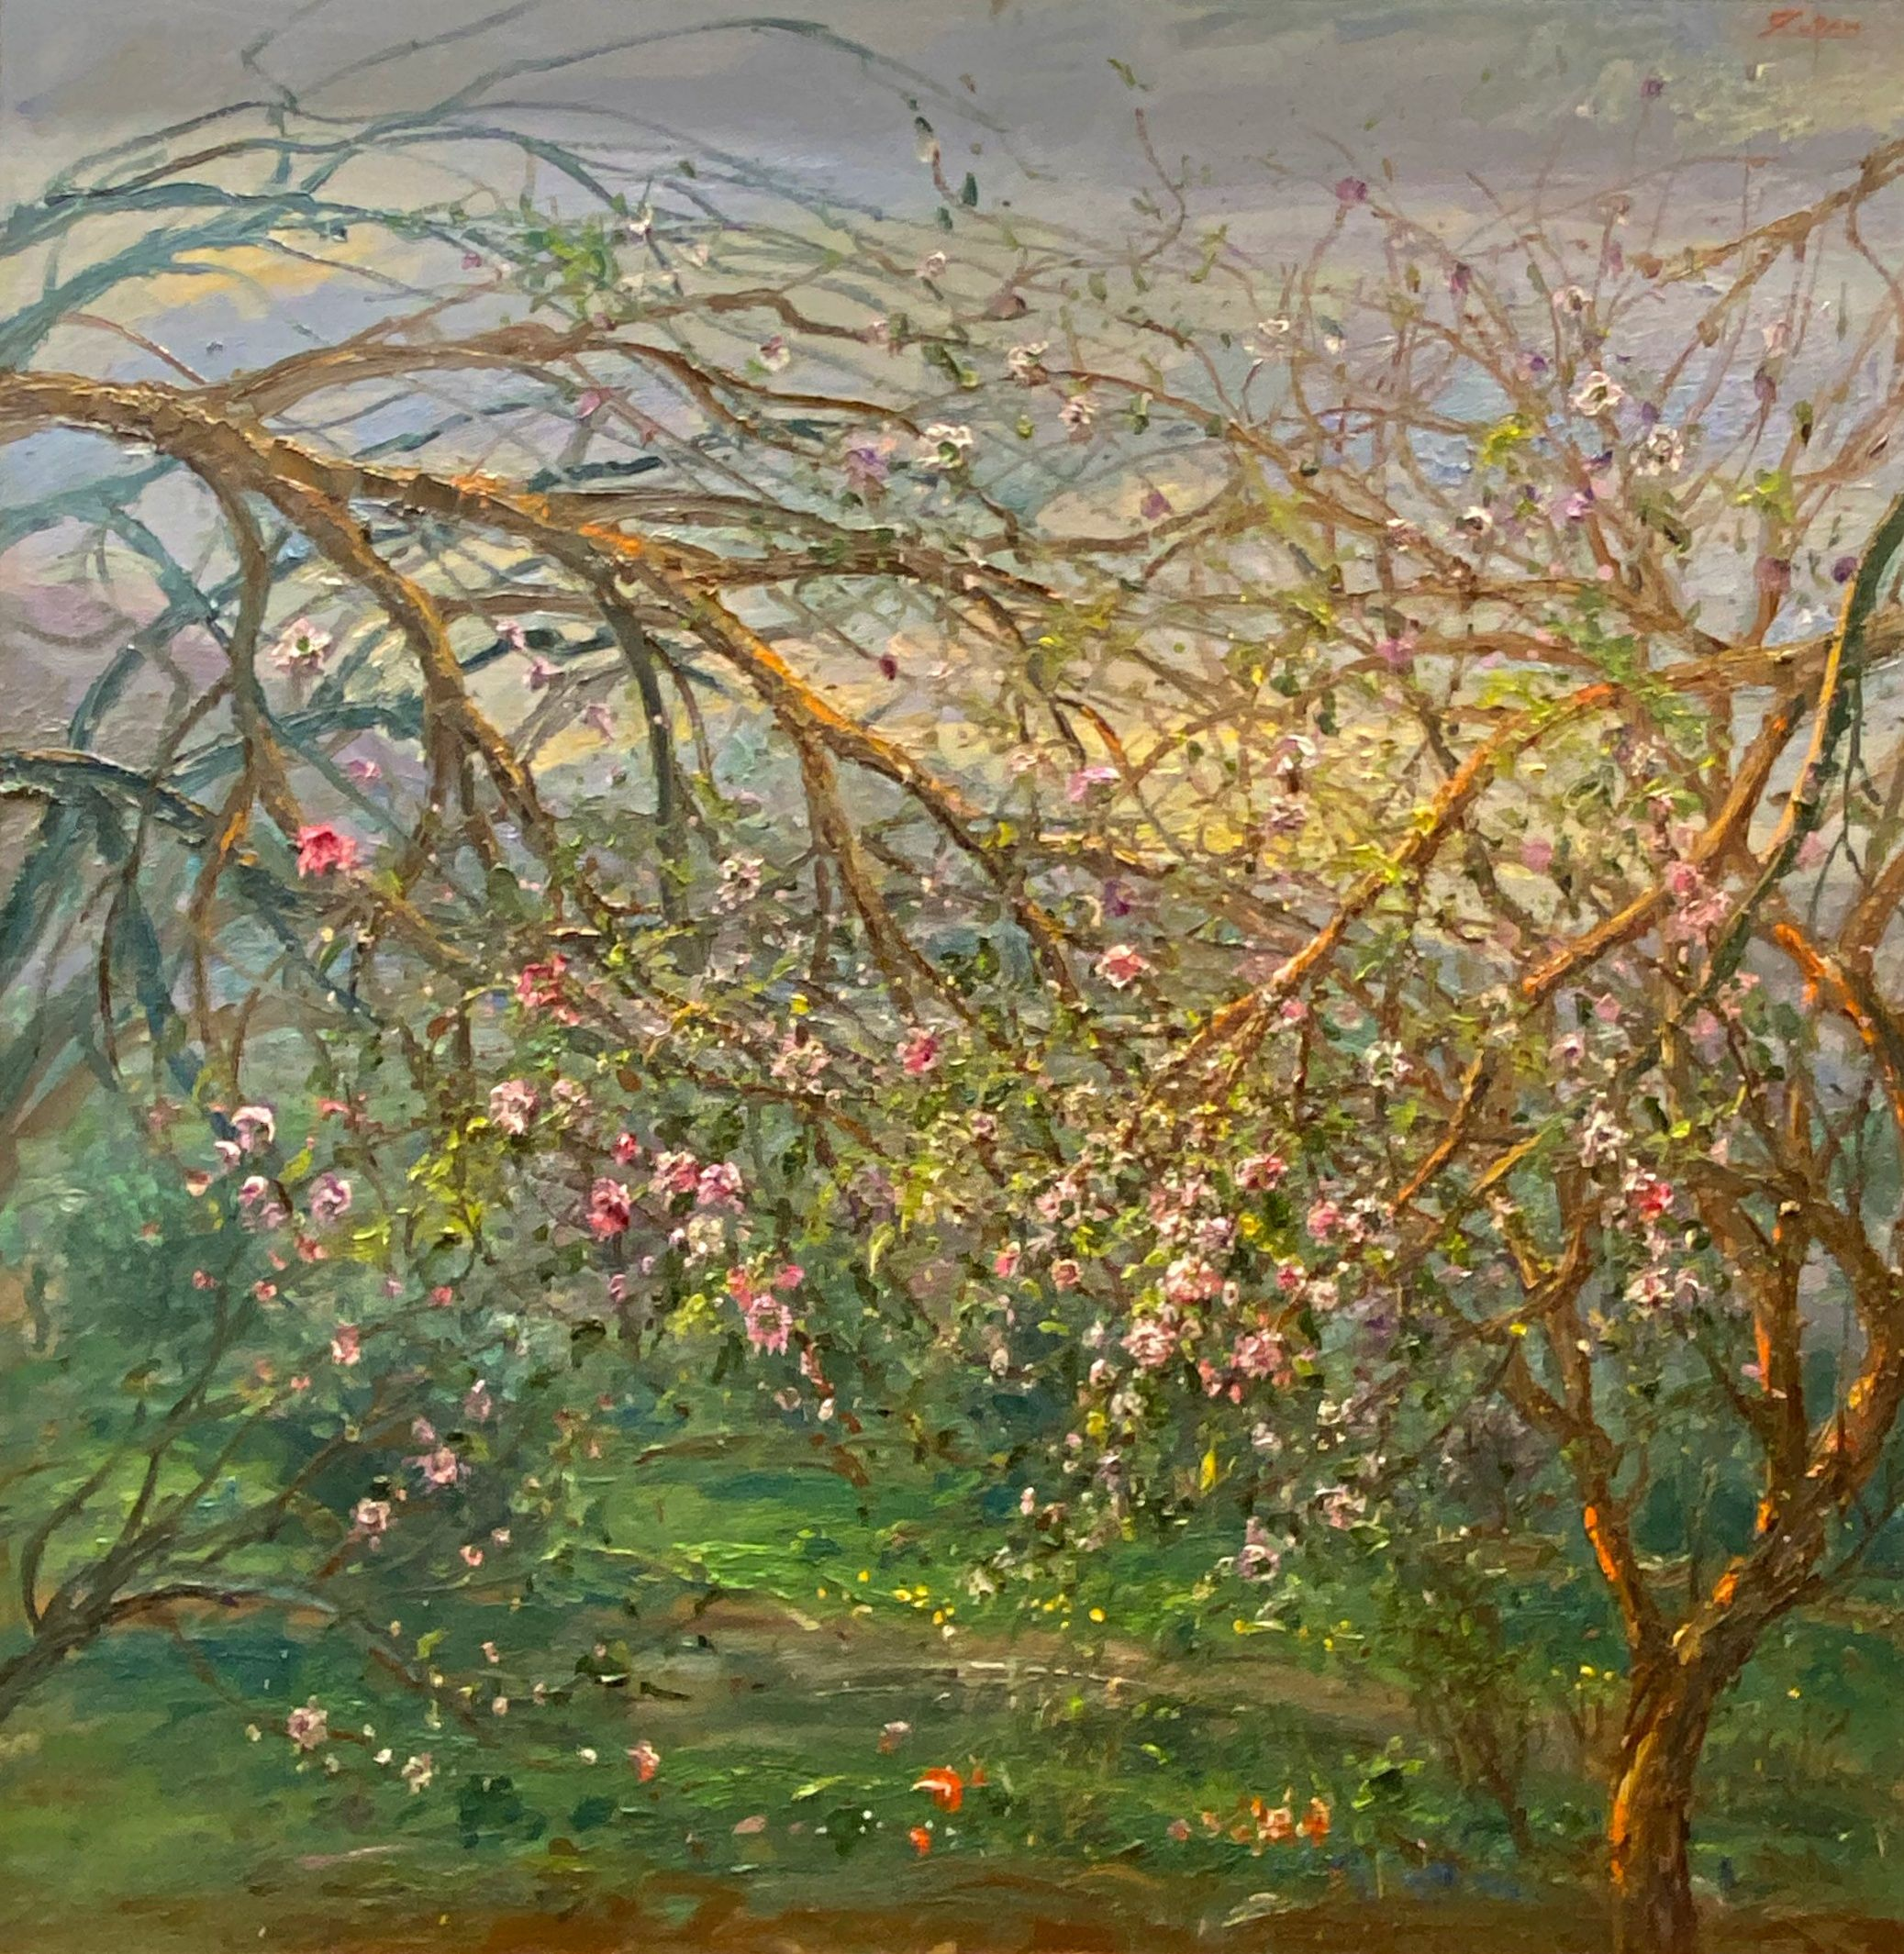 Bruno Zupan - Outlying Fields, Valldemossa, 2018; Painting; Original oil on canvas; Signed; Impressionism; Landscape; Off The Wall Gallery Houston